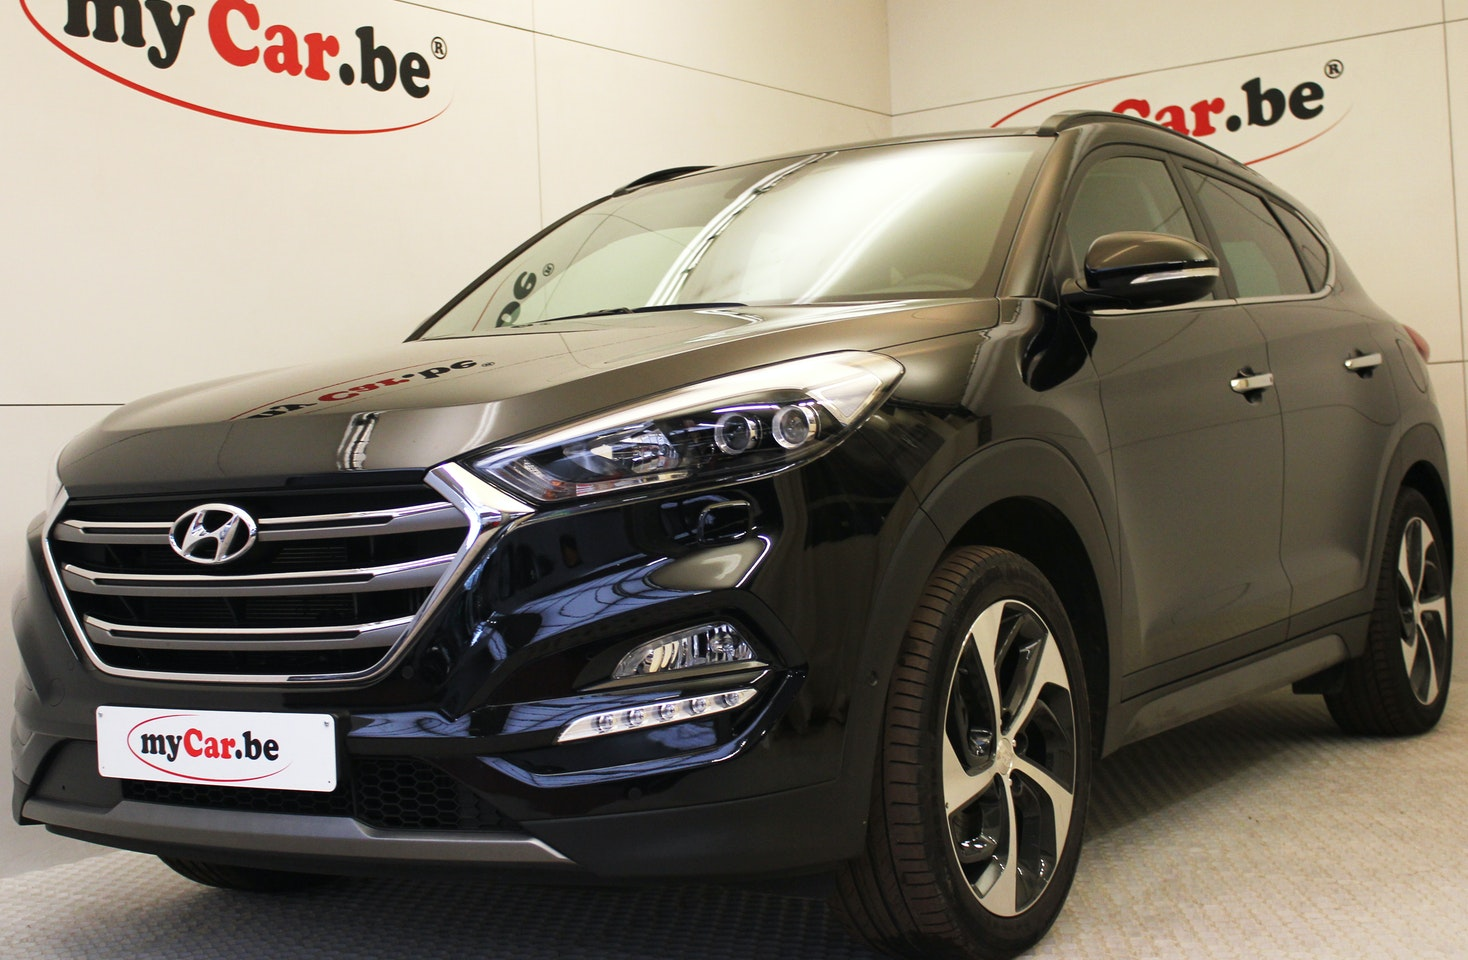 hyundai tucson executive turbo is d specialist in bijna nieuwe wagens. Black Bedroom Furniture Sets. Home Design Ideas